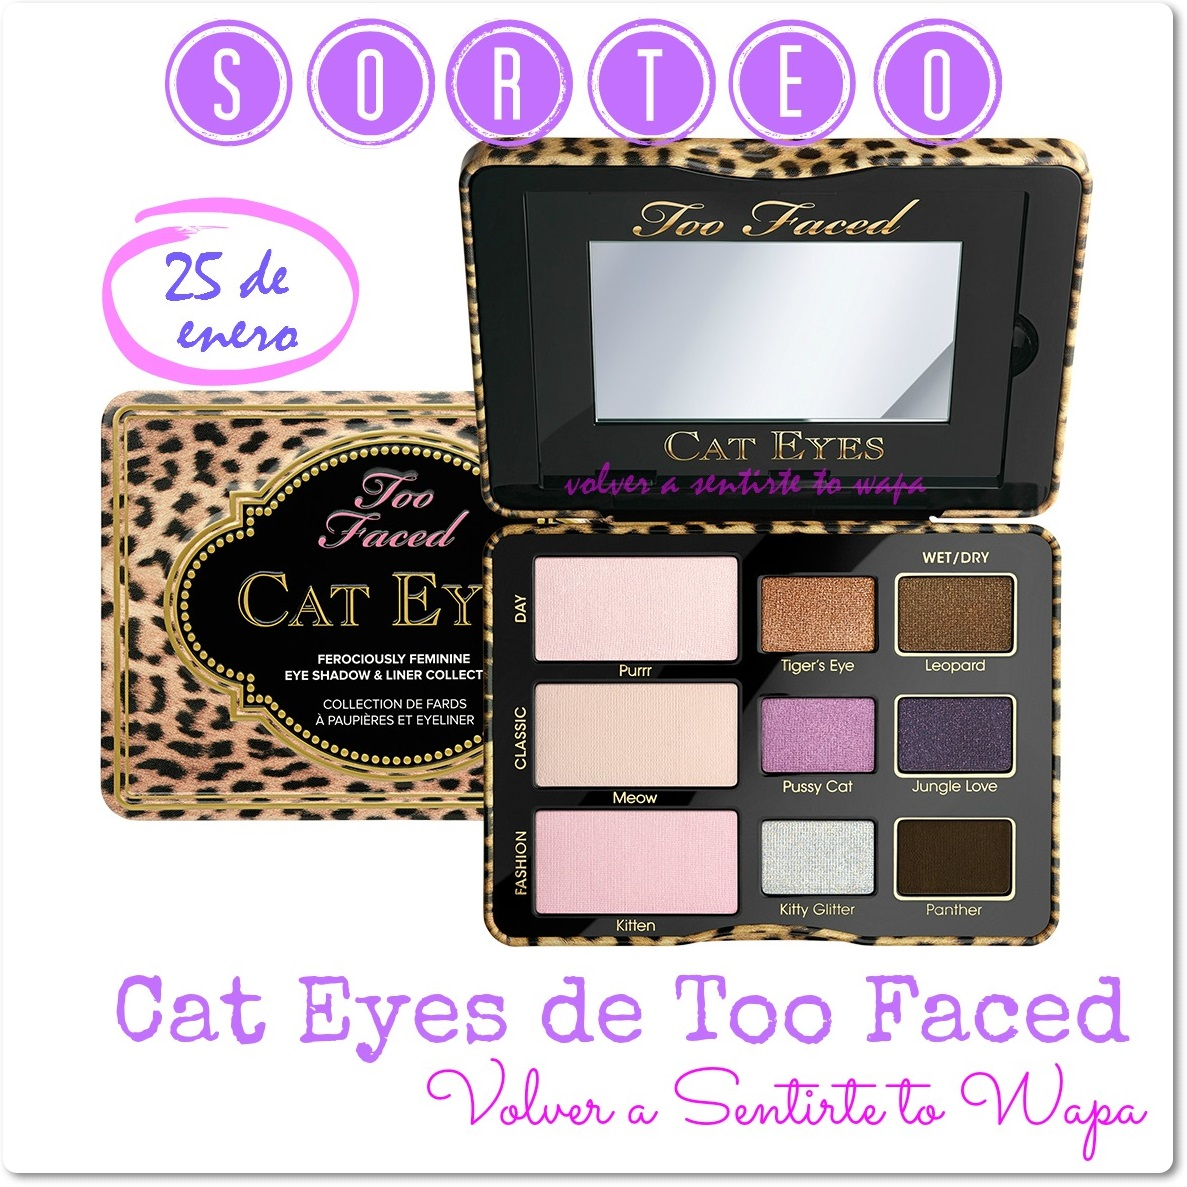 SORTEO TOO FACED - Paleta Cat Eyes - Volver a Sentirte to Wapa